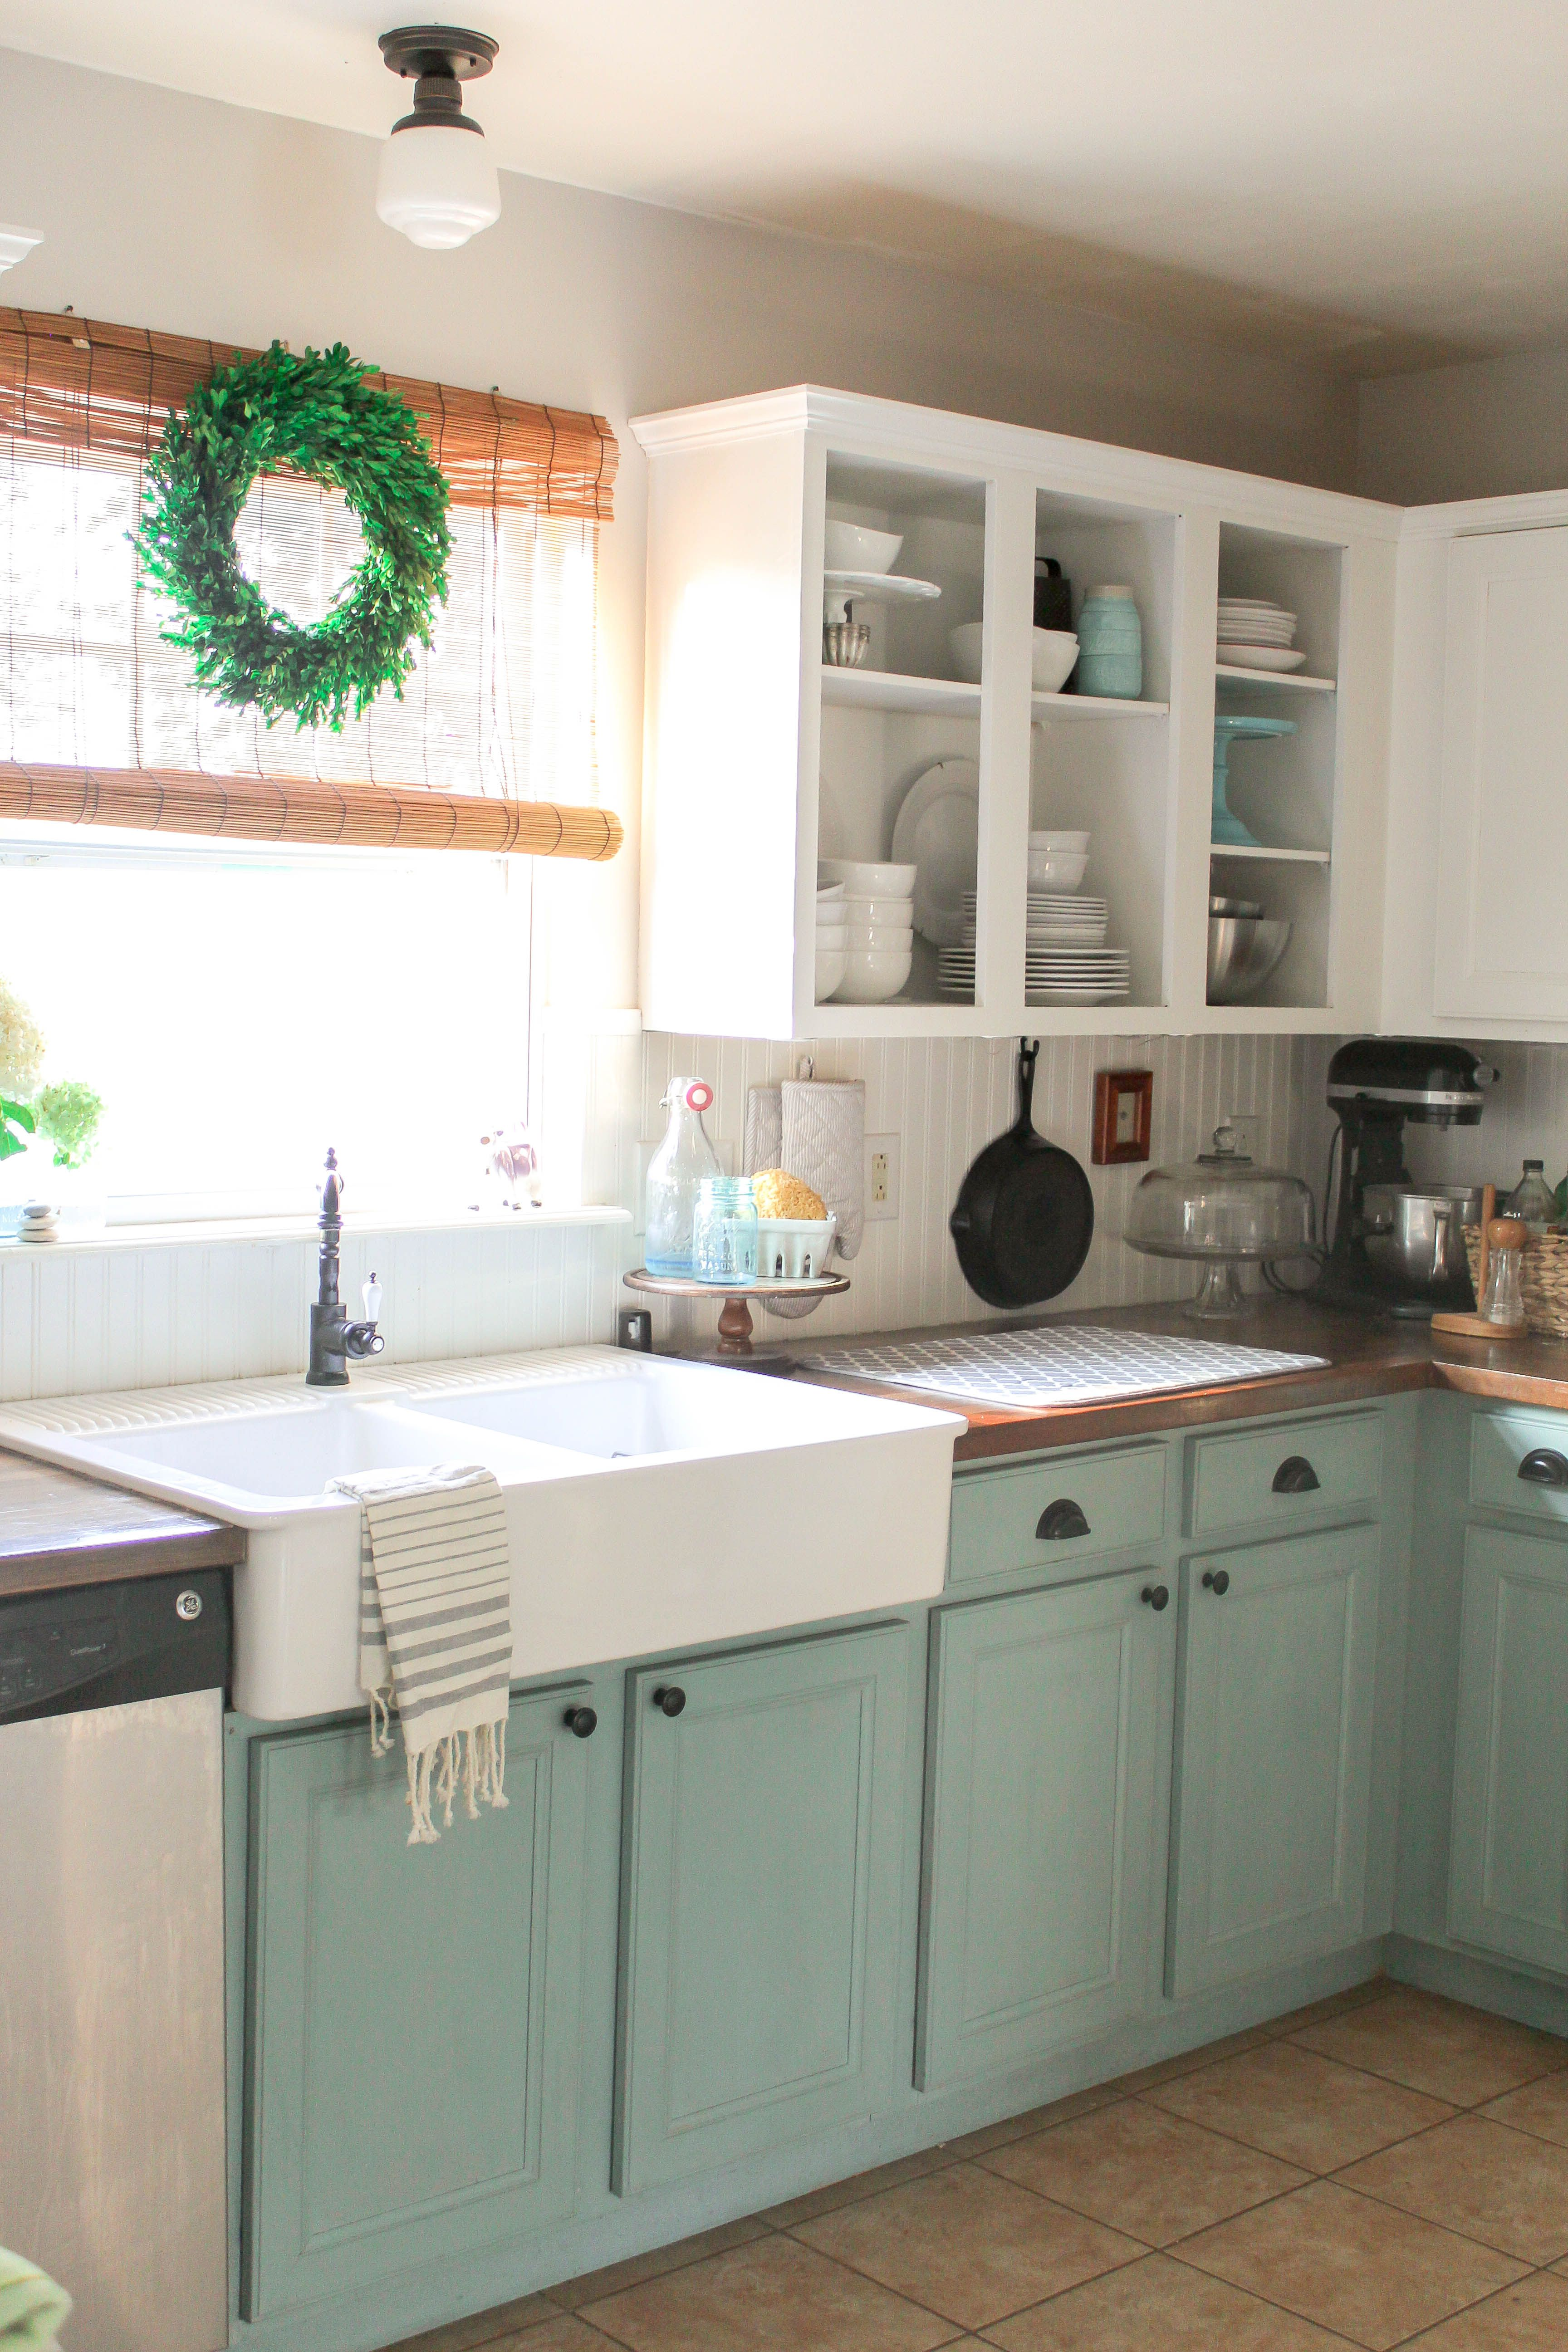 Chalk Painted Kitchen Cabinets: 2 Years Later | Sara ...